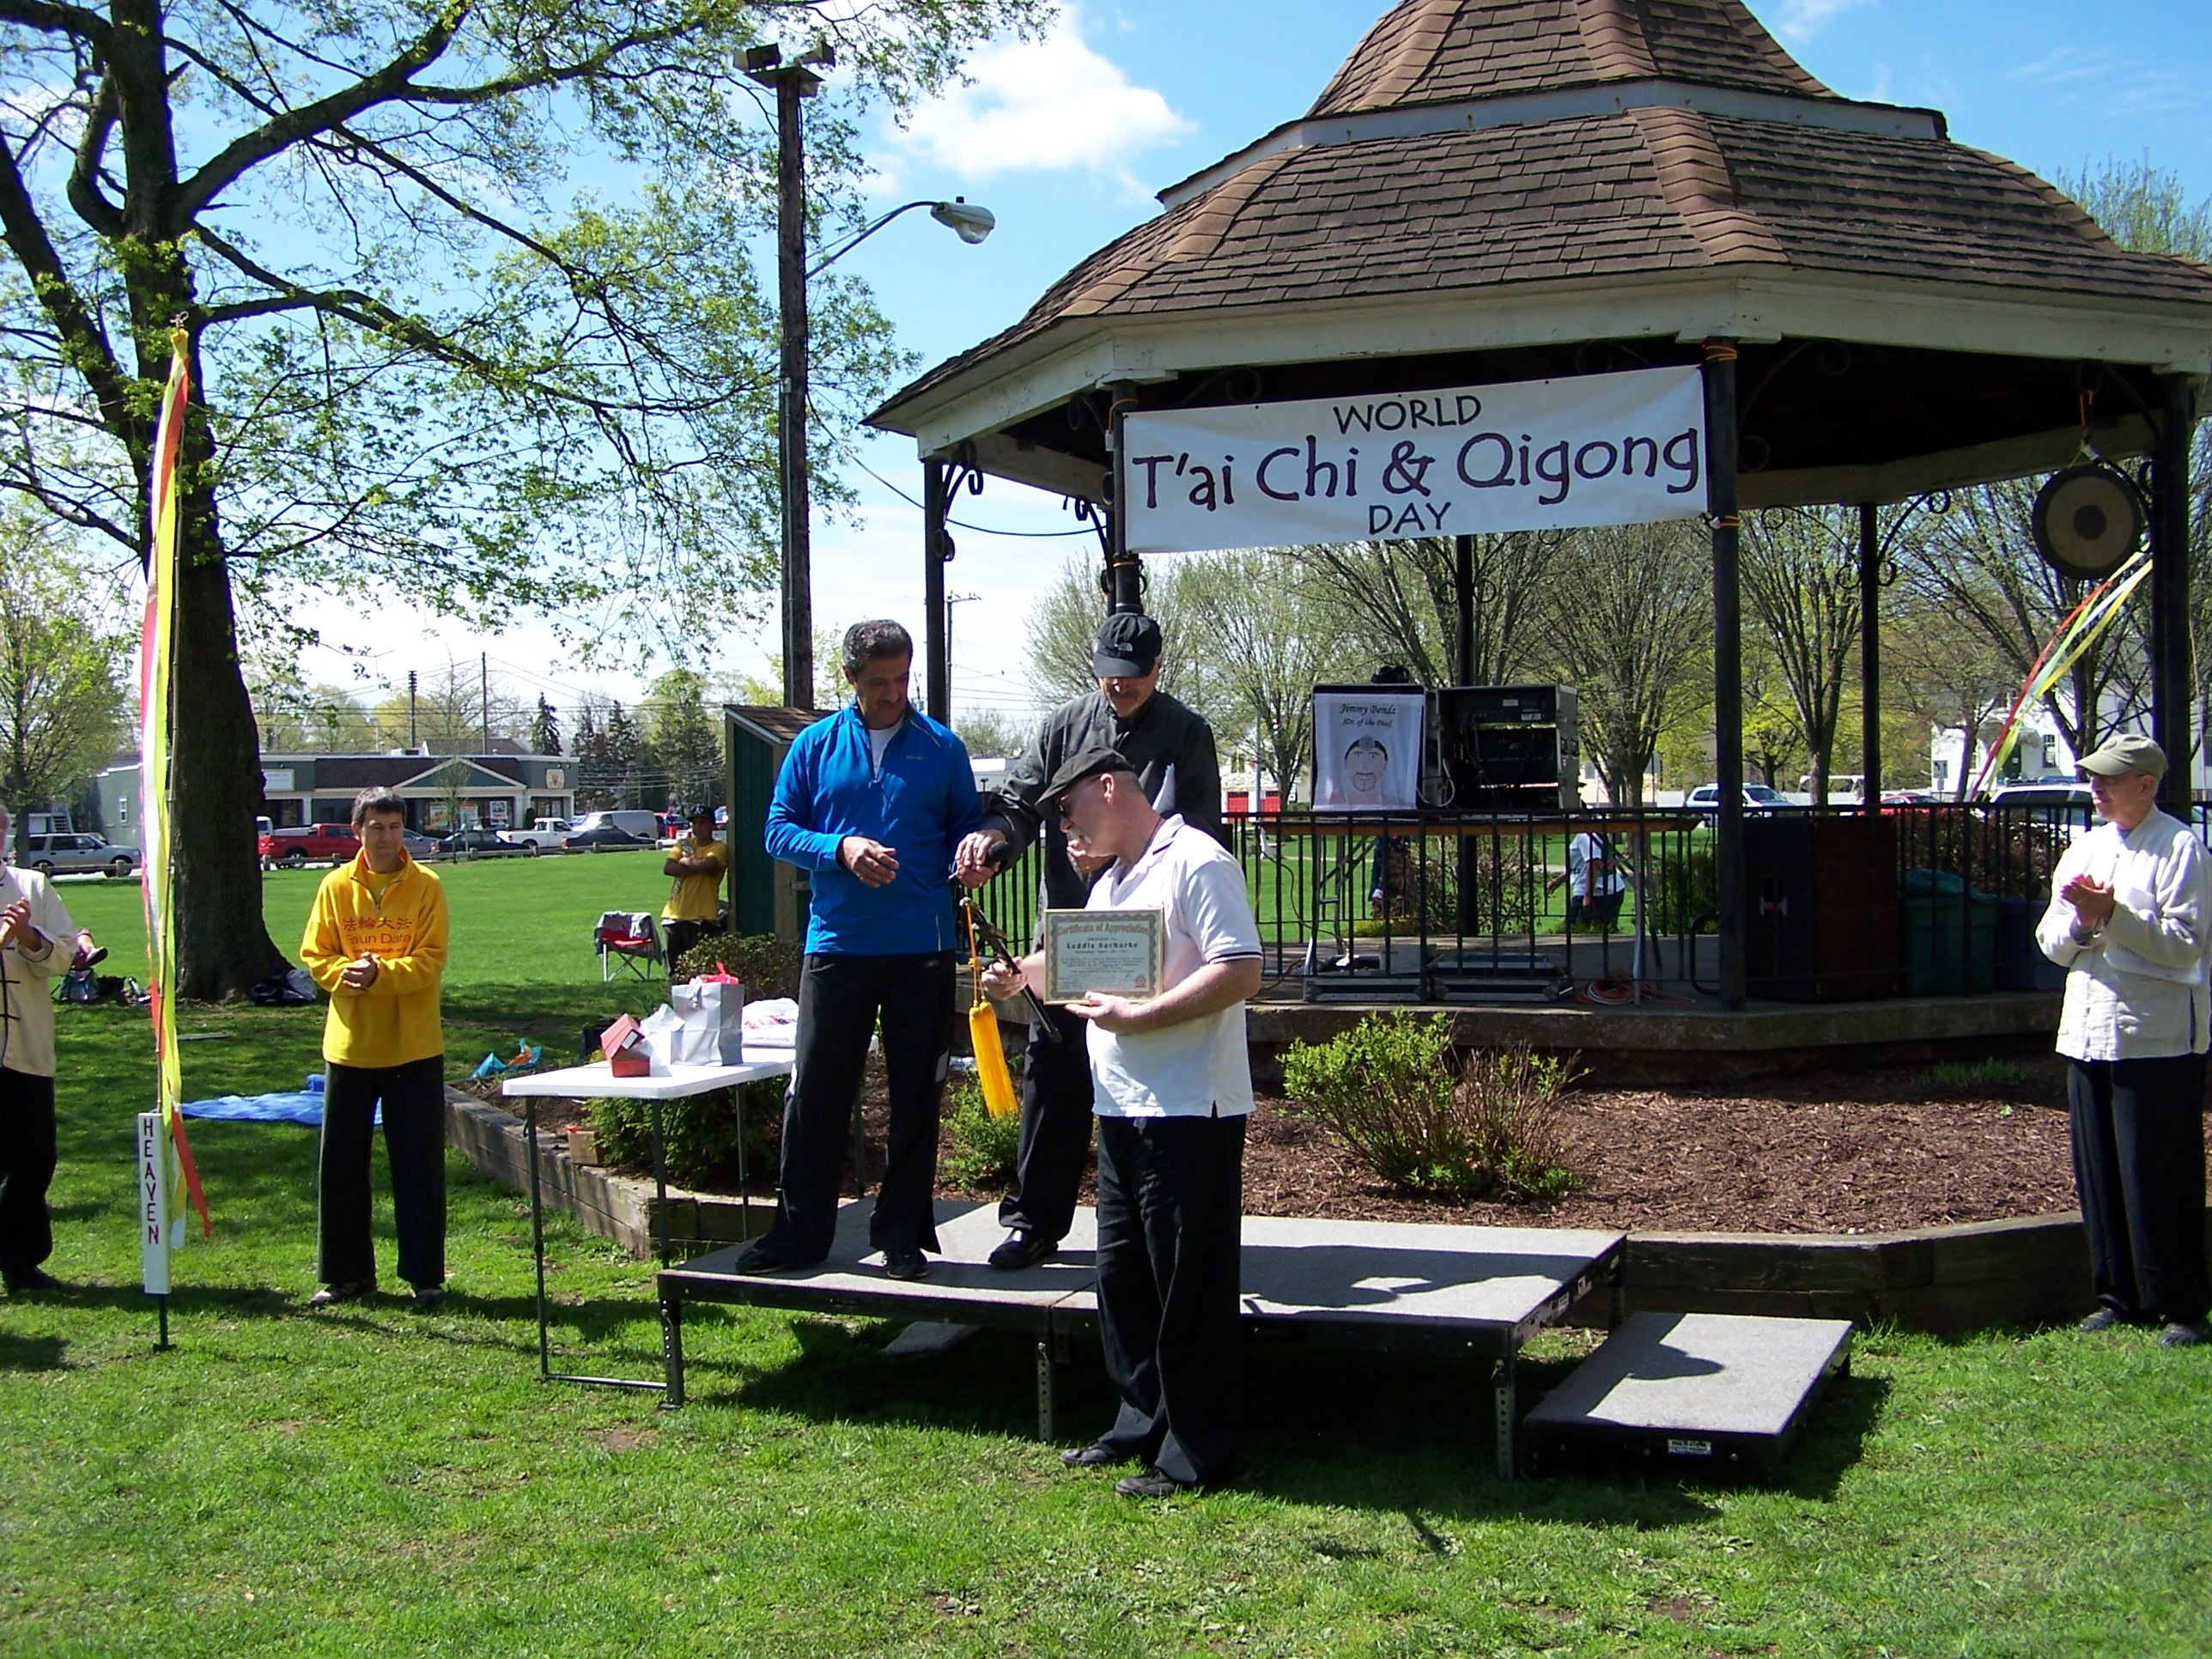 Thanking an old host with departing gifts, Laddie Sacharko was recognized for 12 years of leadership in organizing CT World Tai Chi Day